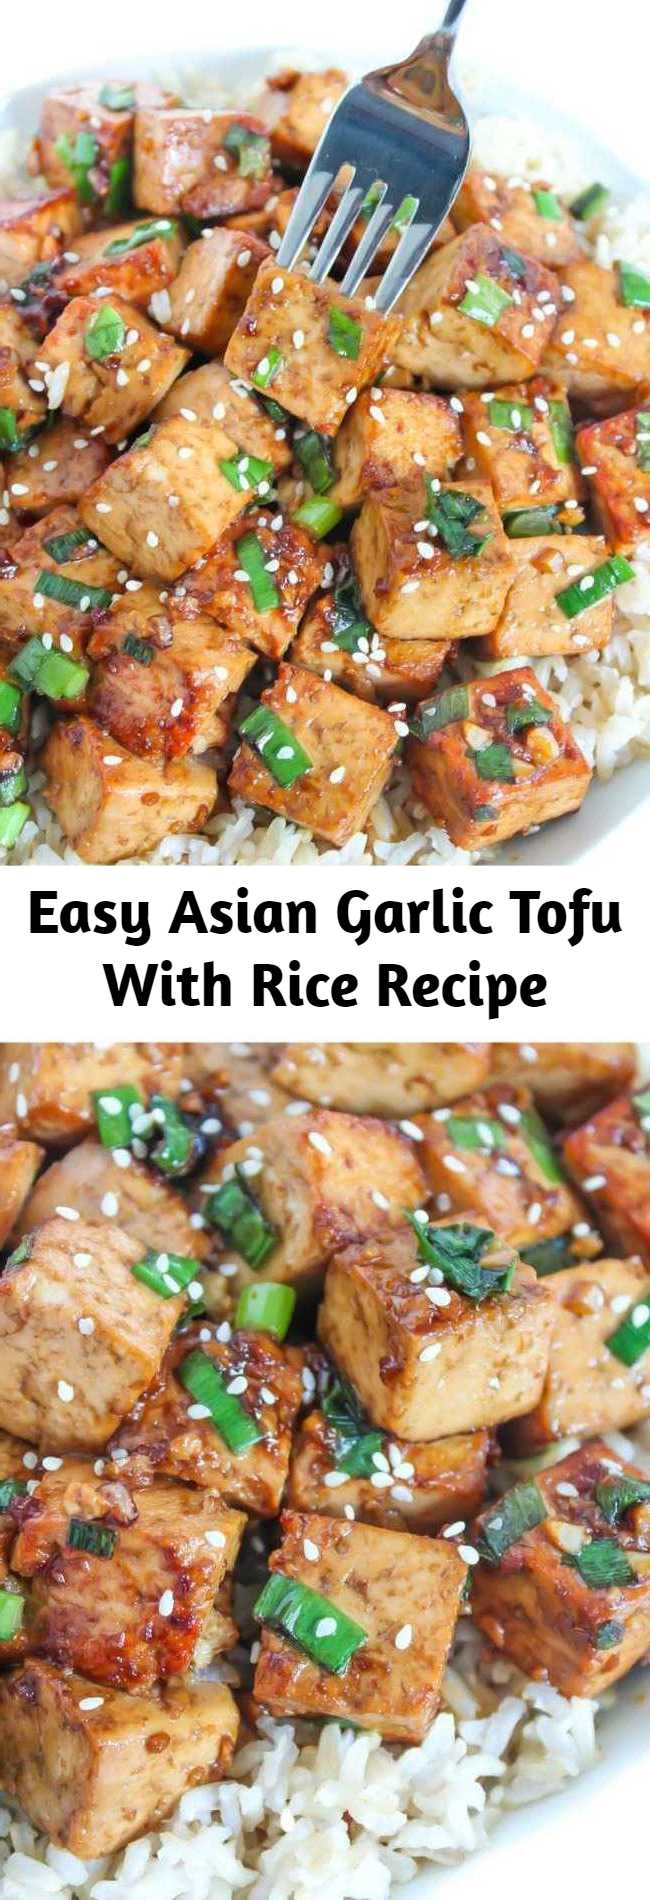 Easy Asian Garlic Tofu With Rice Recipe - Tofu marinated in an Asian-style garlic sauce that's packed with savory, delicious flavor! An easy dish that's perfect with a side of rice & steamed veggies. (vegan, gluten-free)